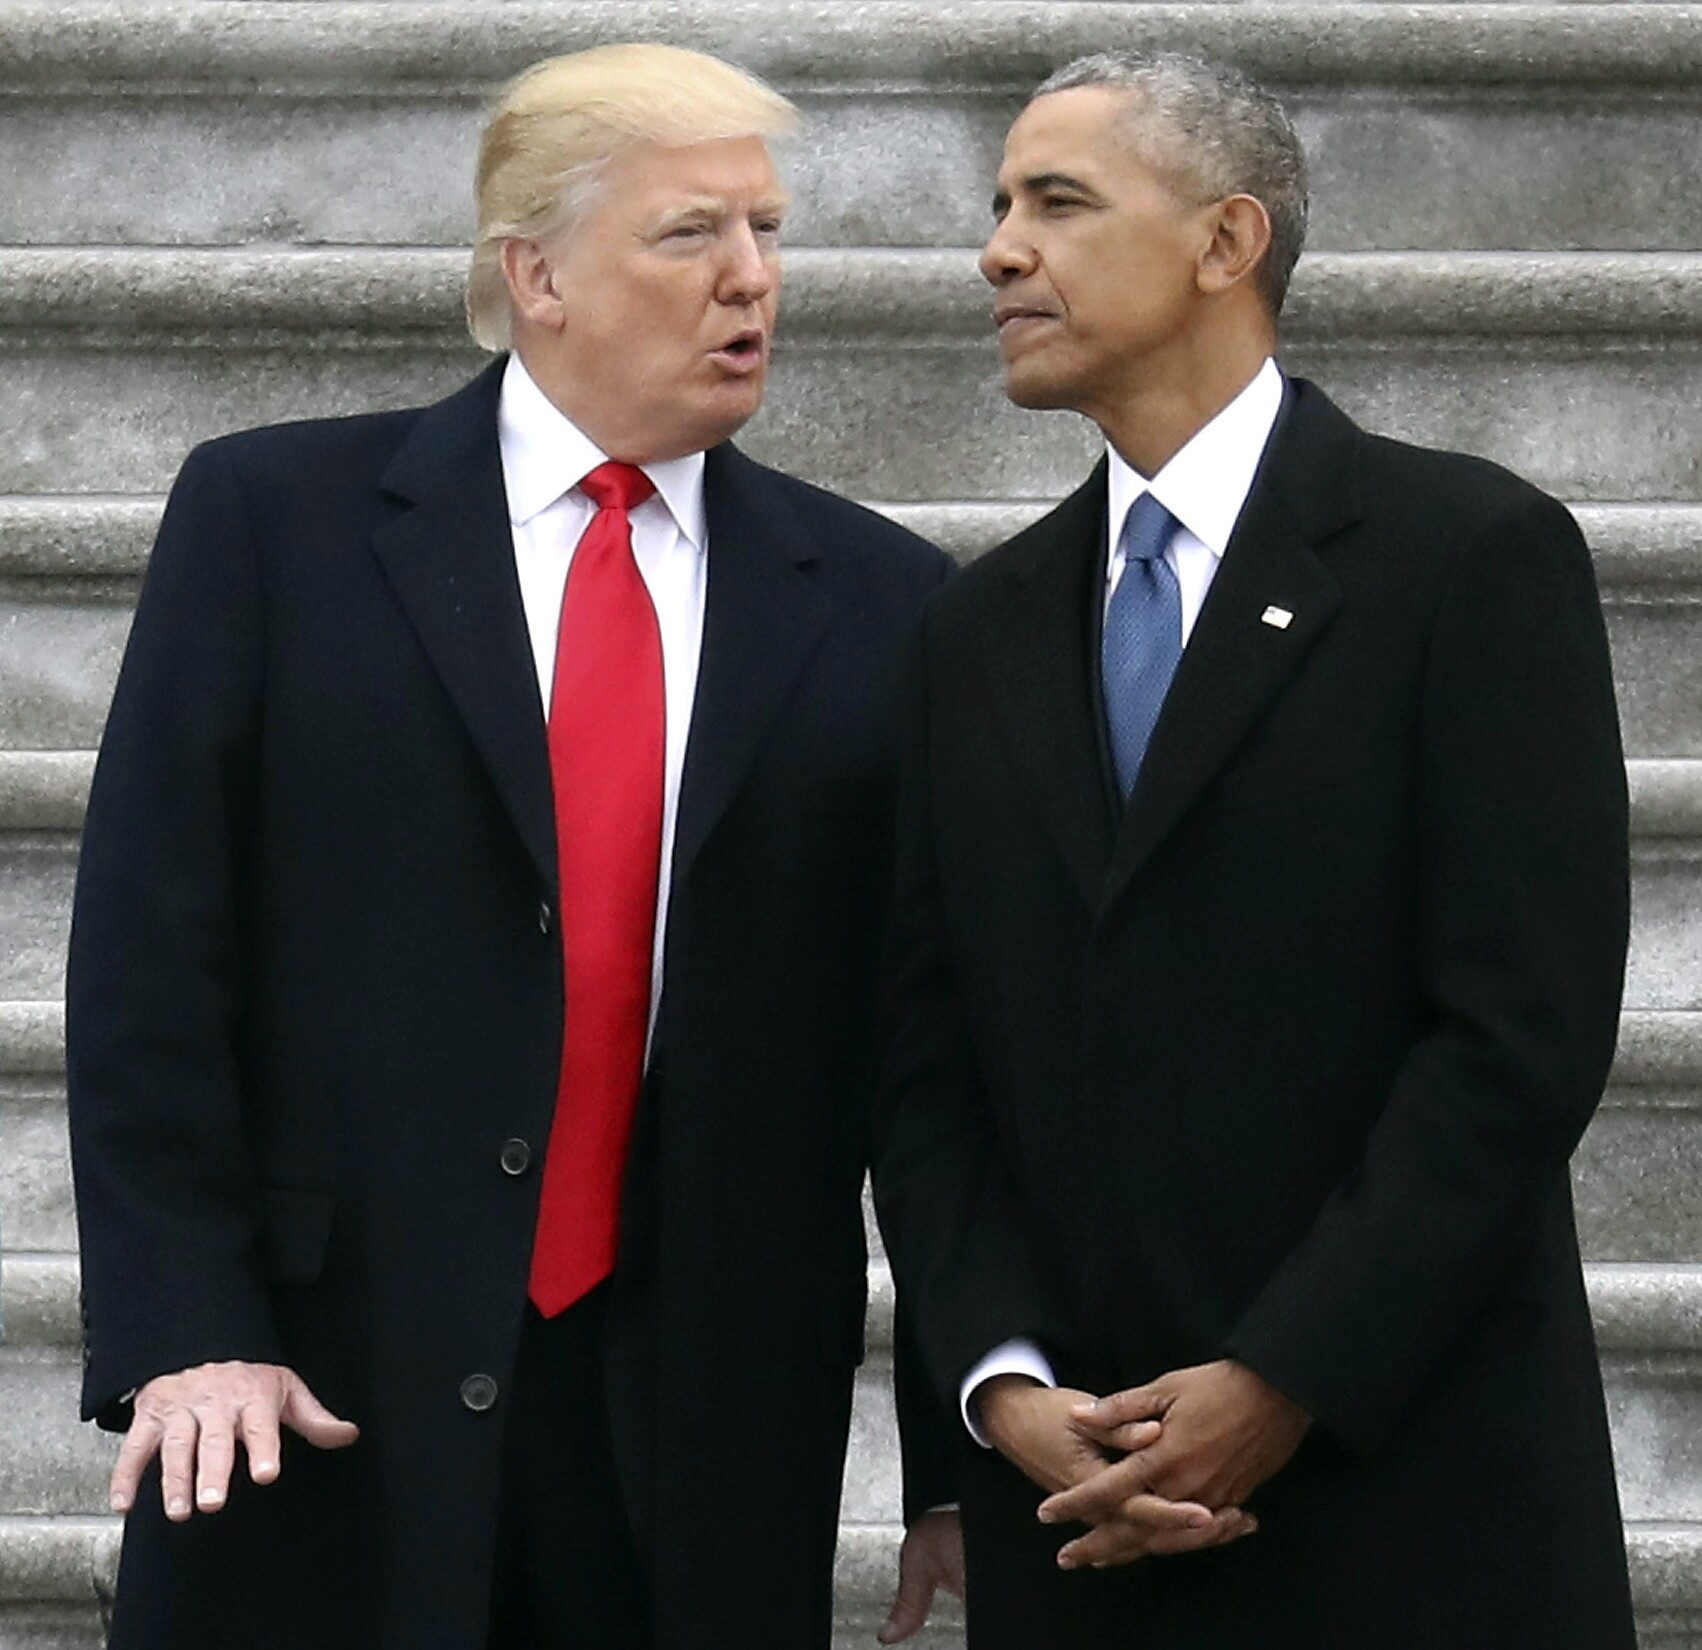 President Obama: Obama Crushes Clinton As 'best' President, But Trump Tops